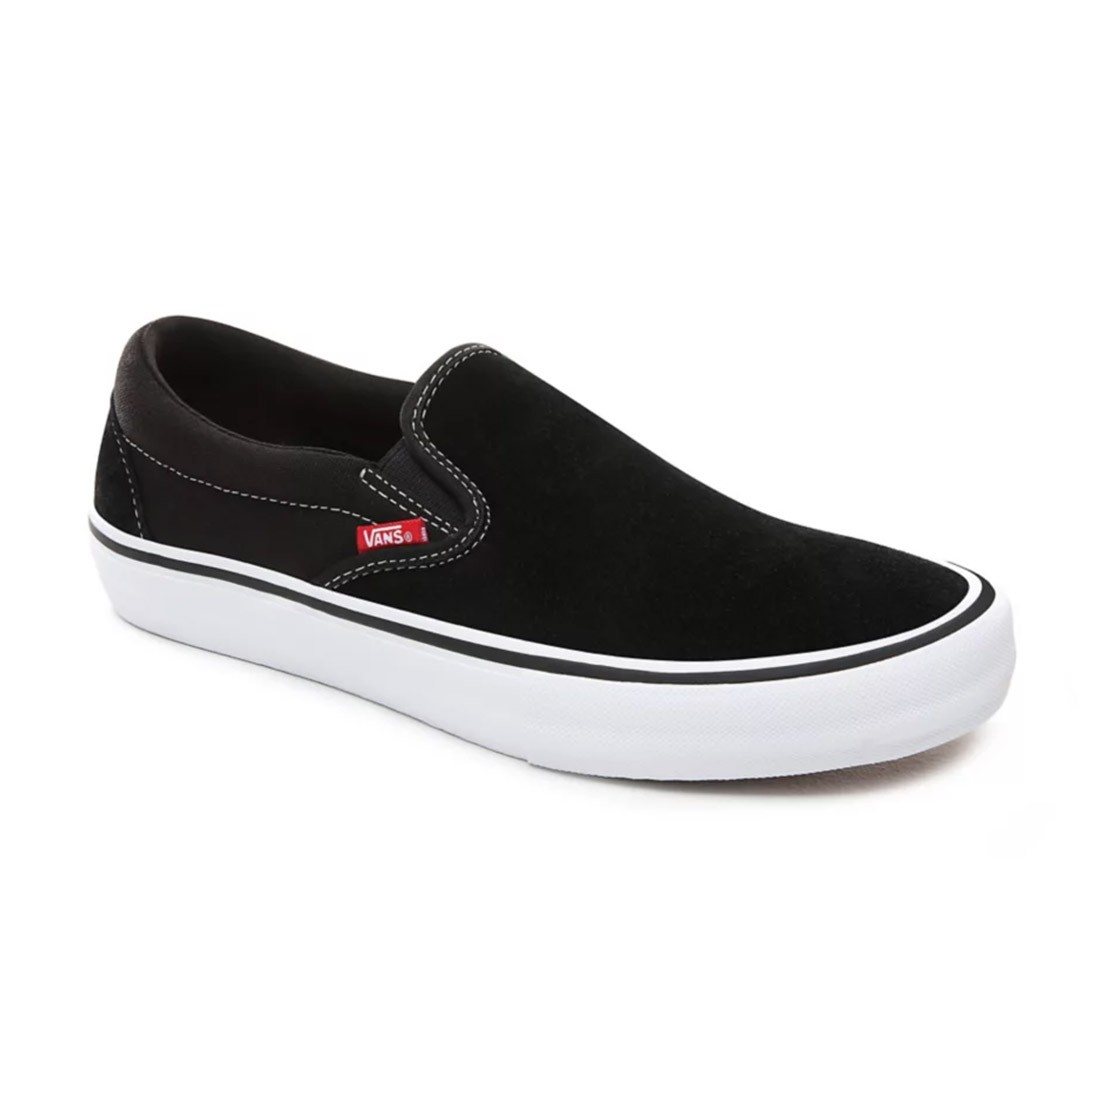 SLIP ON PRO black white gum